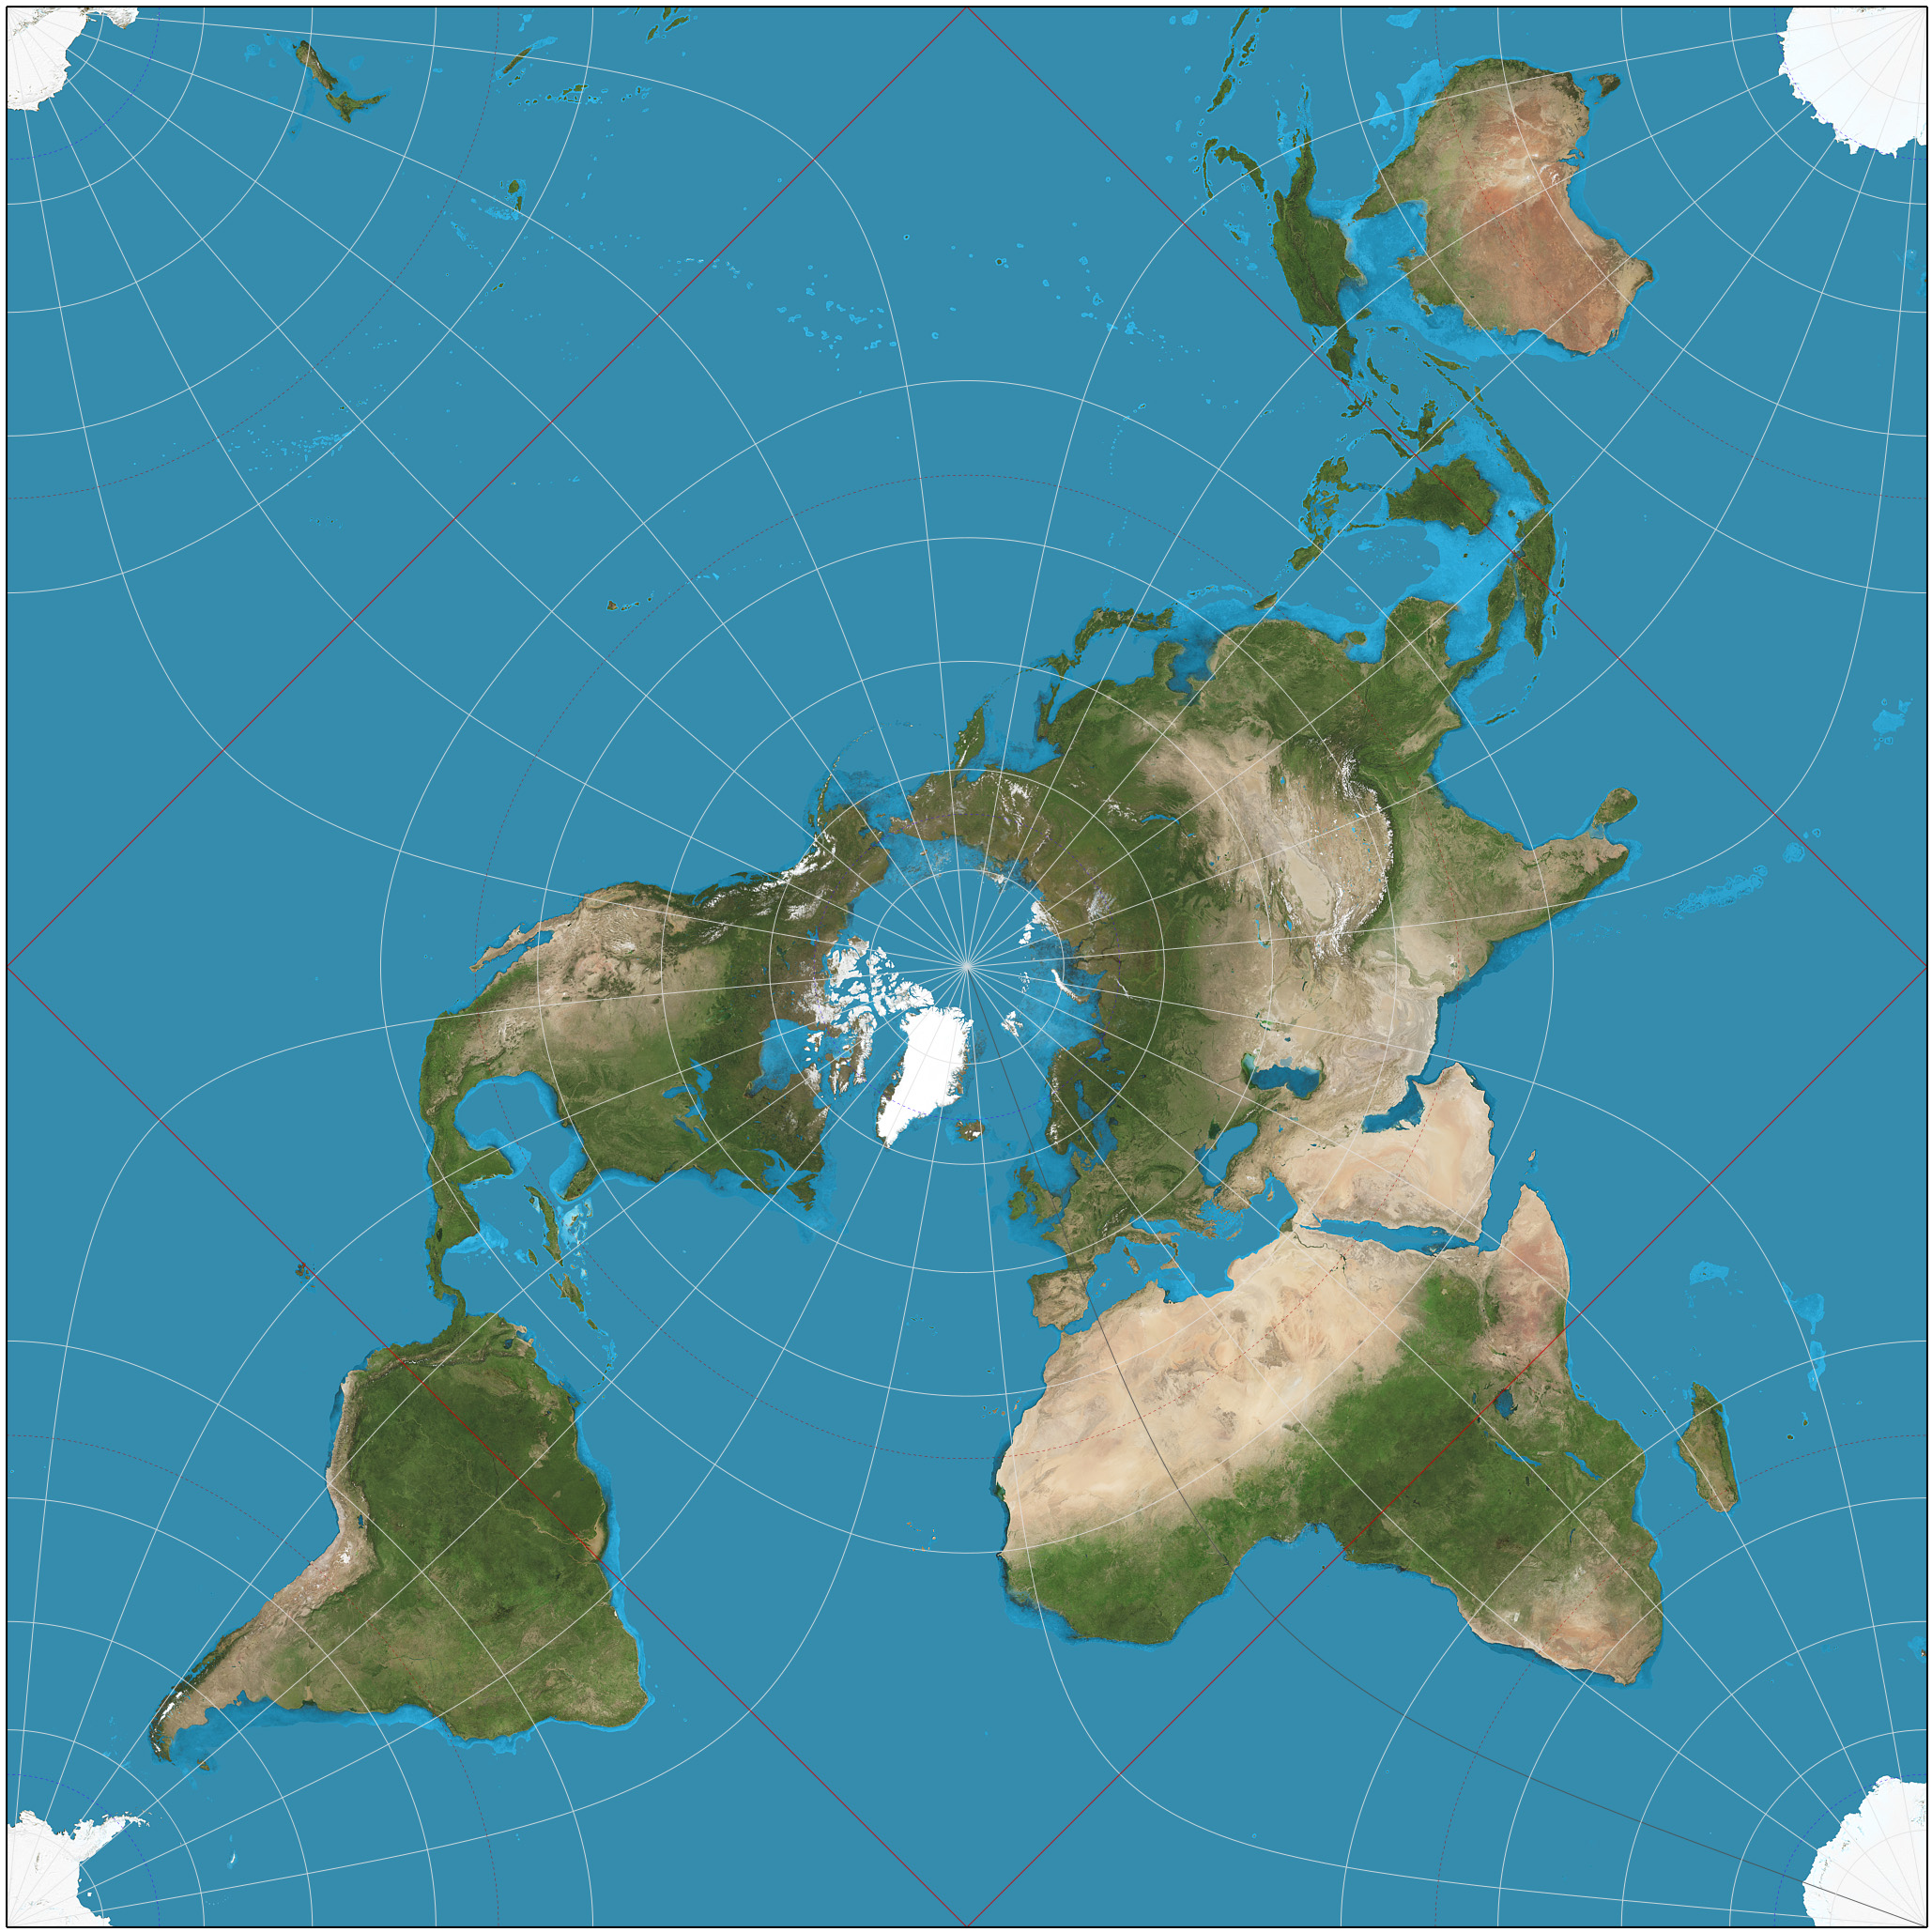 Peirce quincuncial projection - Wikipedia on model of map, set of map, photography of map, drawing of map, map of map, animation of map, texture of map, element of map, depression of map, shape of map, scale of map, type of map, view of map, orientation of map,